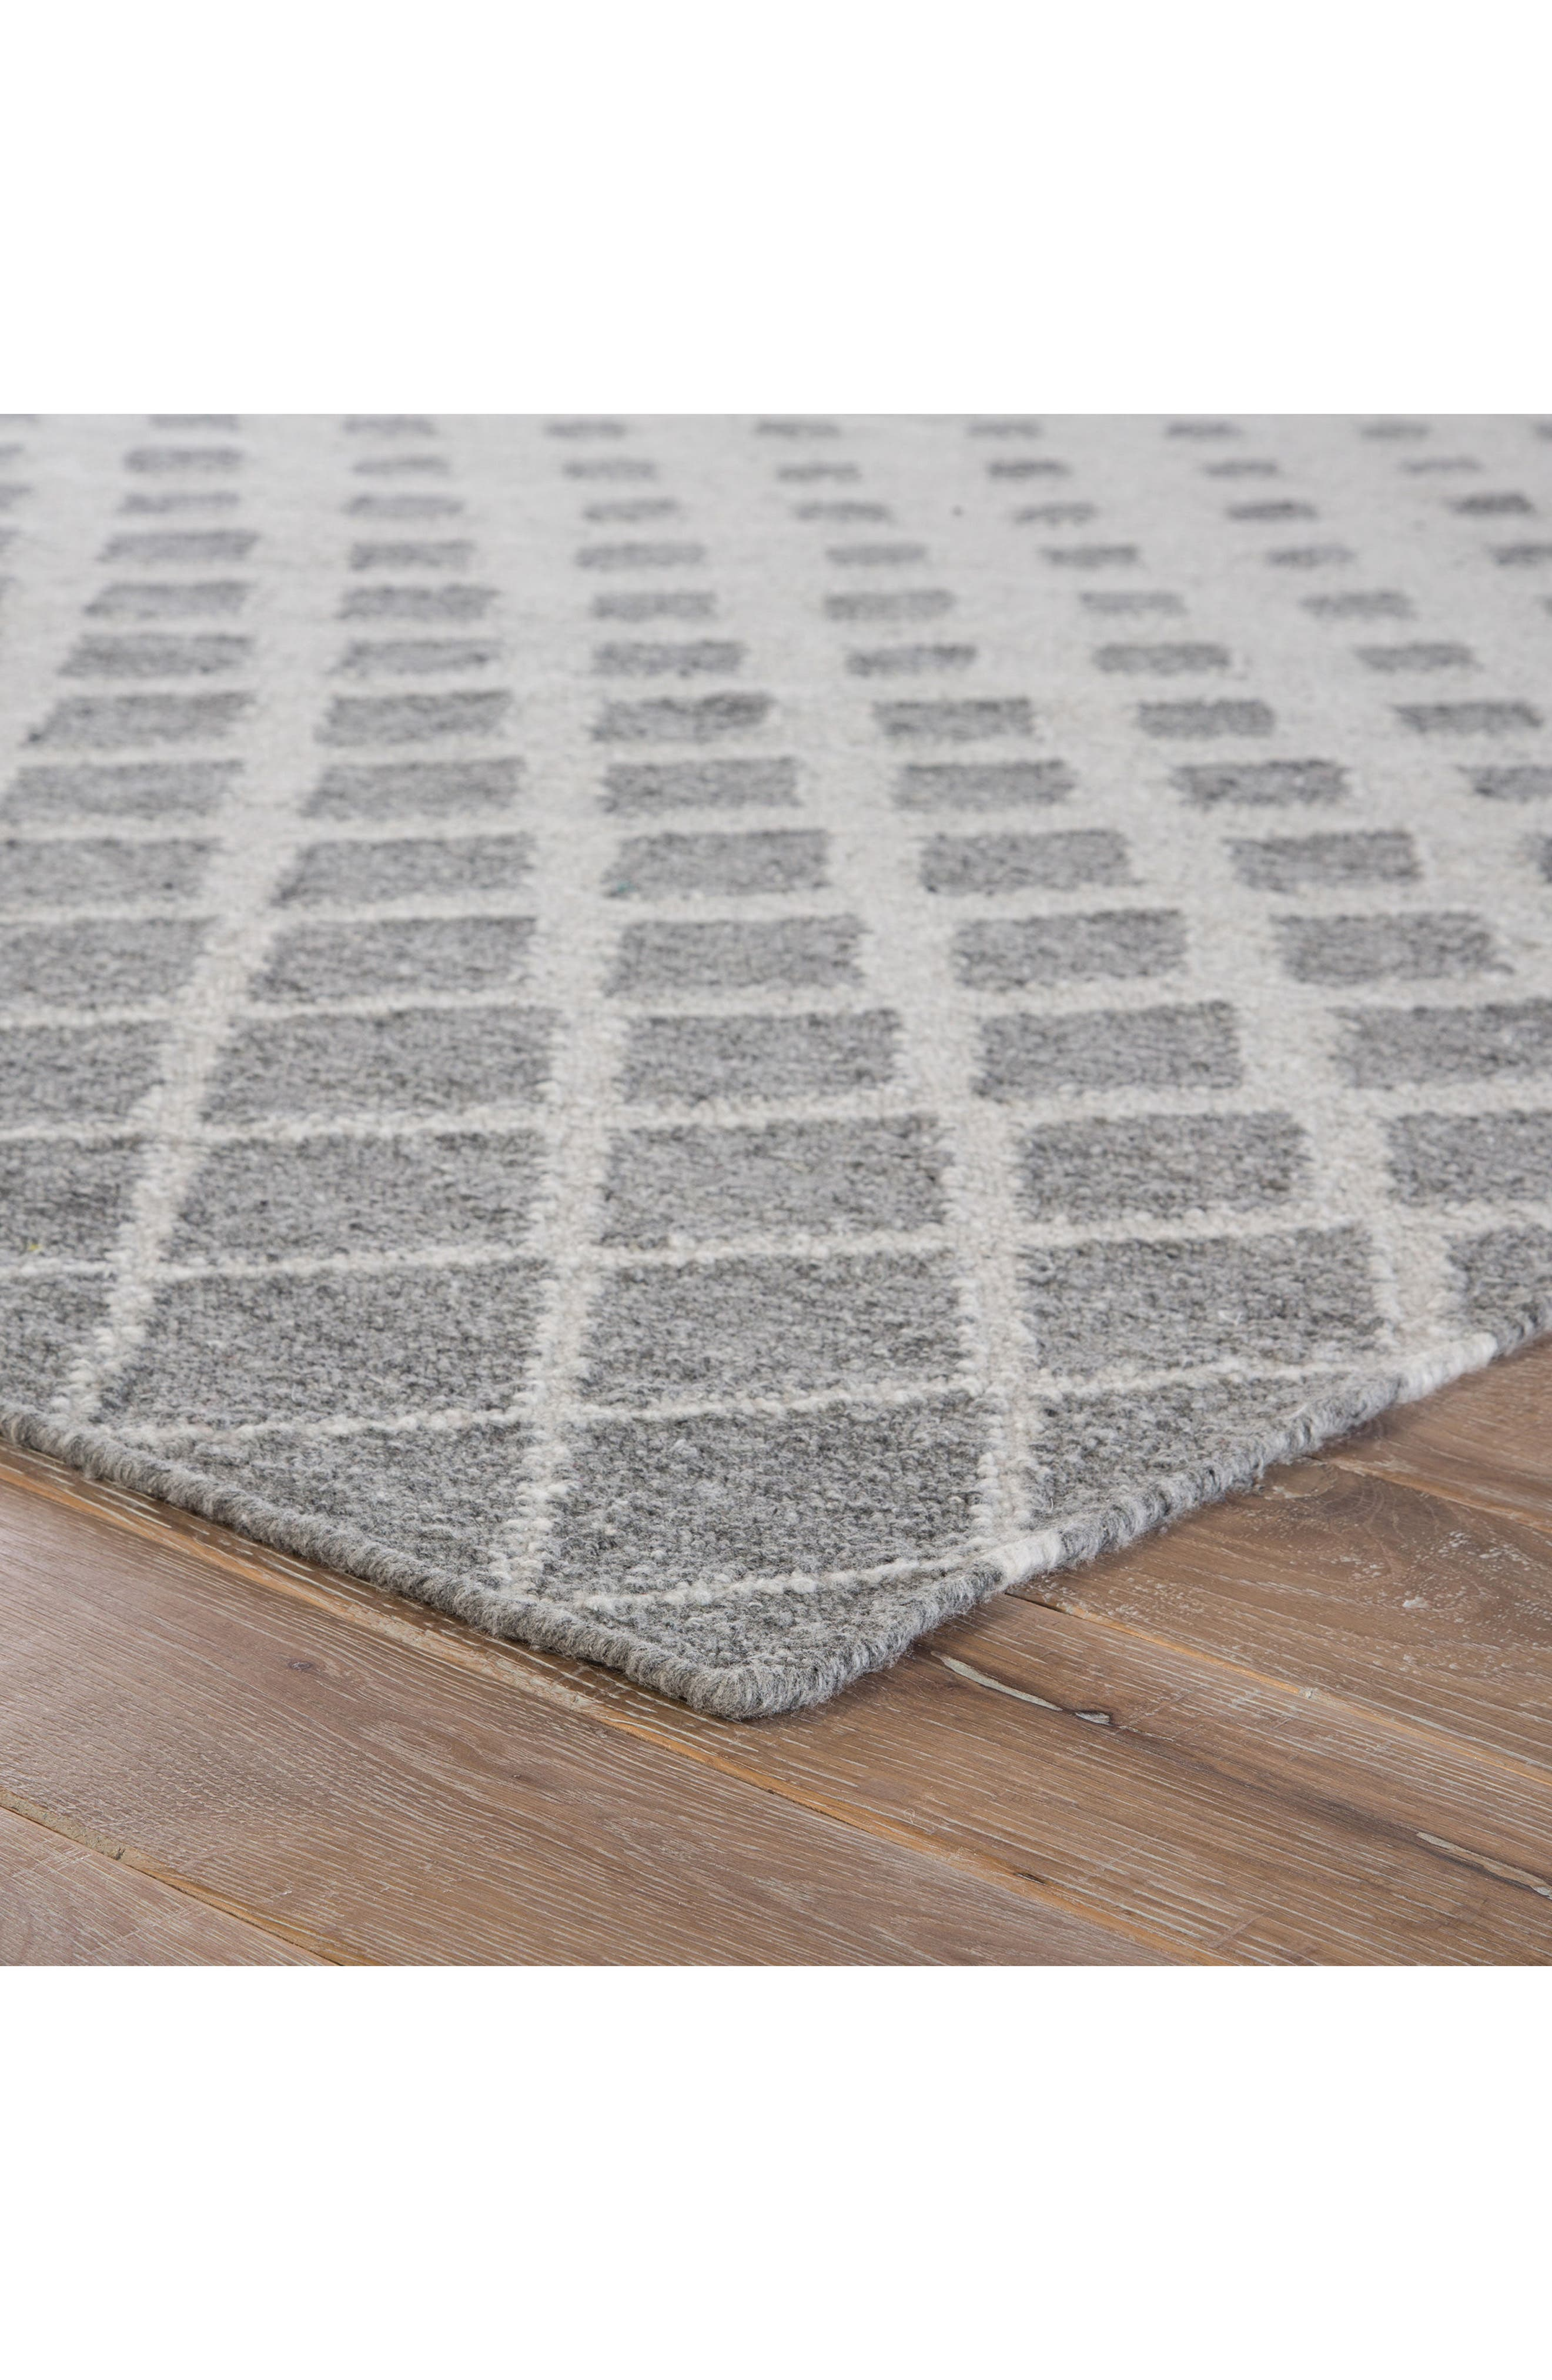 Pyramid Blocks Rug,                             Alternate thumbnail 5, color,                             099